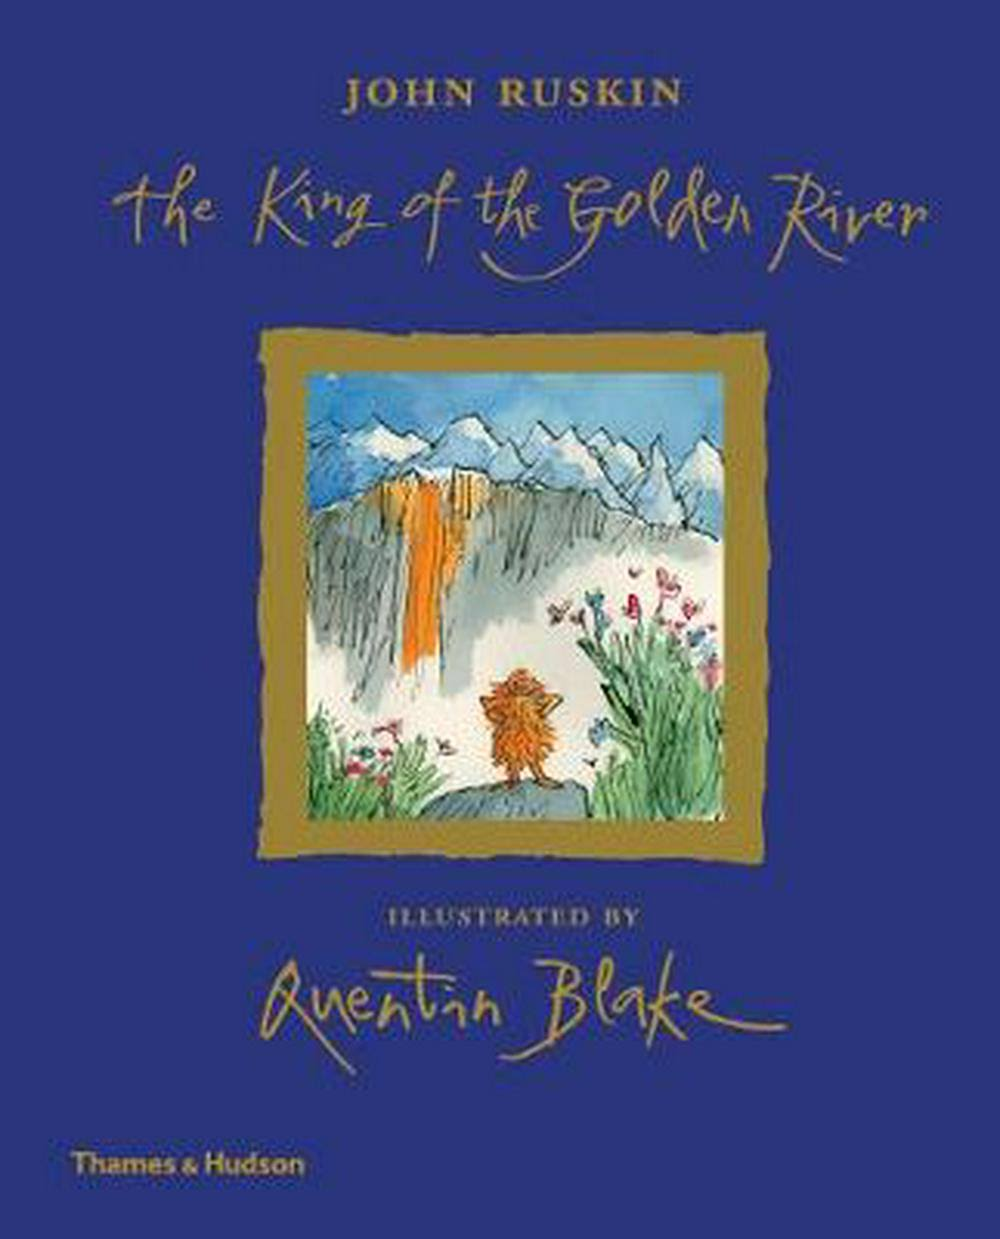 The King of the Golden River - John Rushkin & Quentin Blake